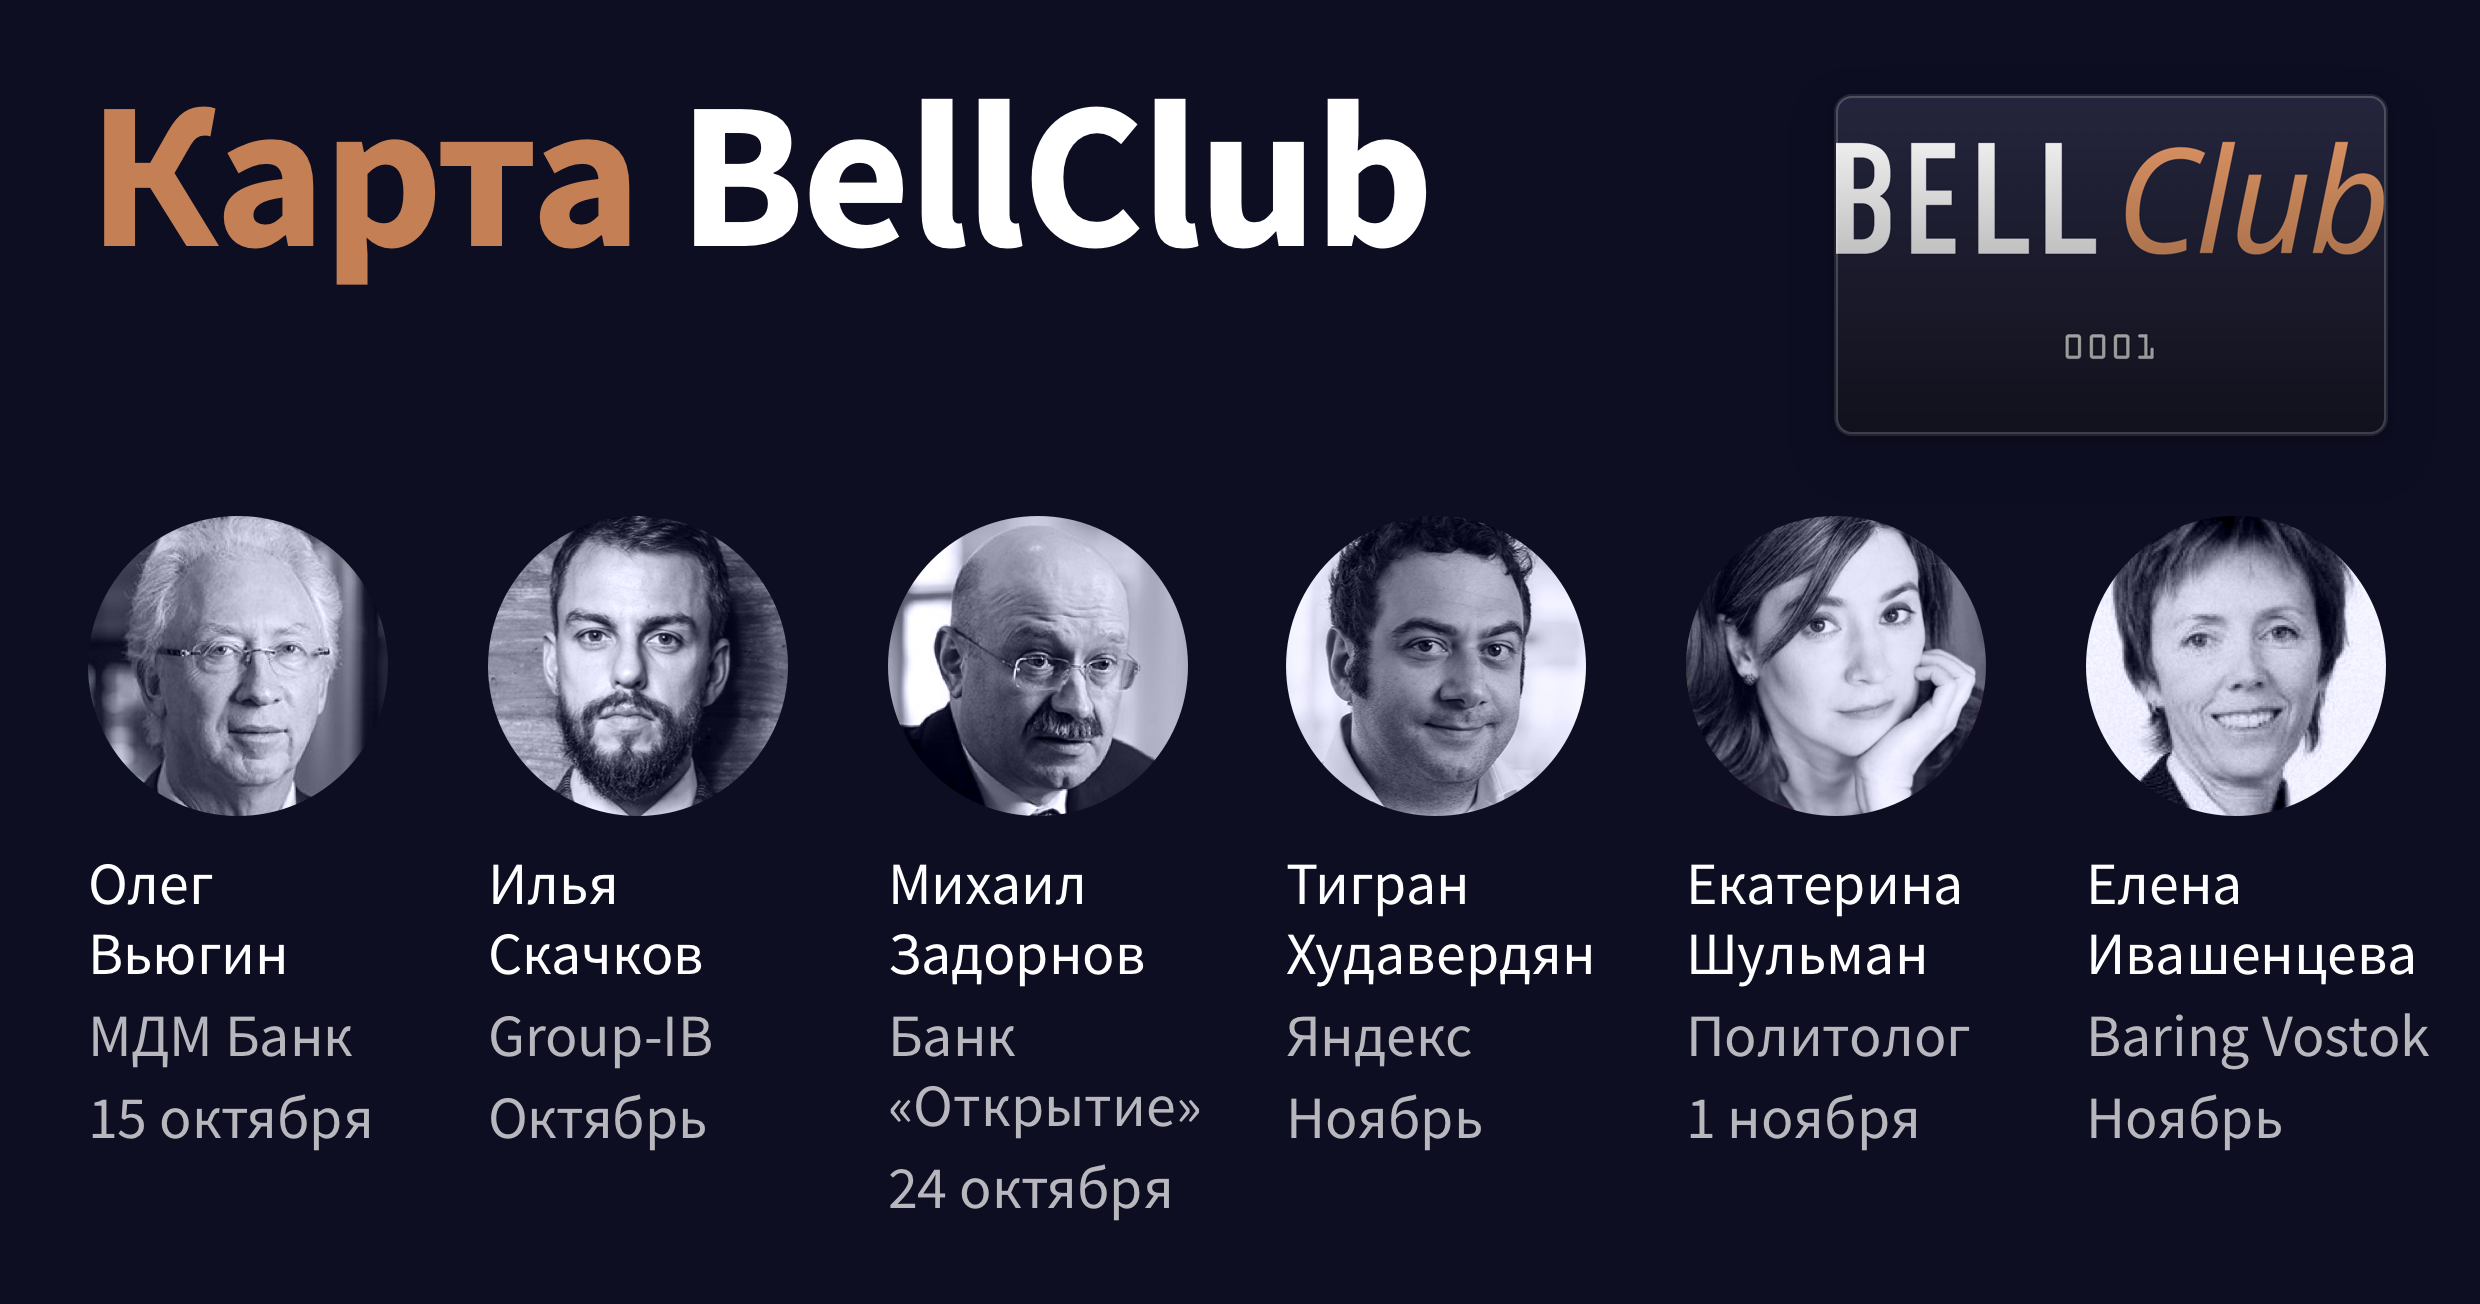 https://thebell.io/club-card/